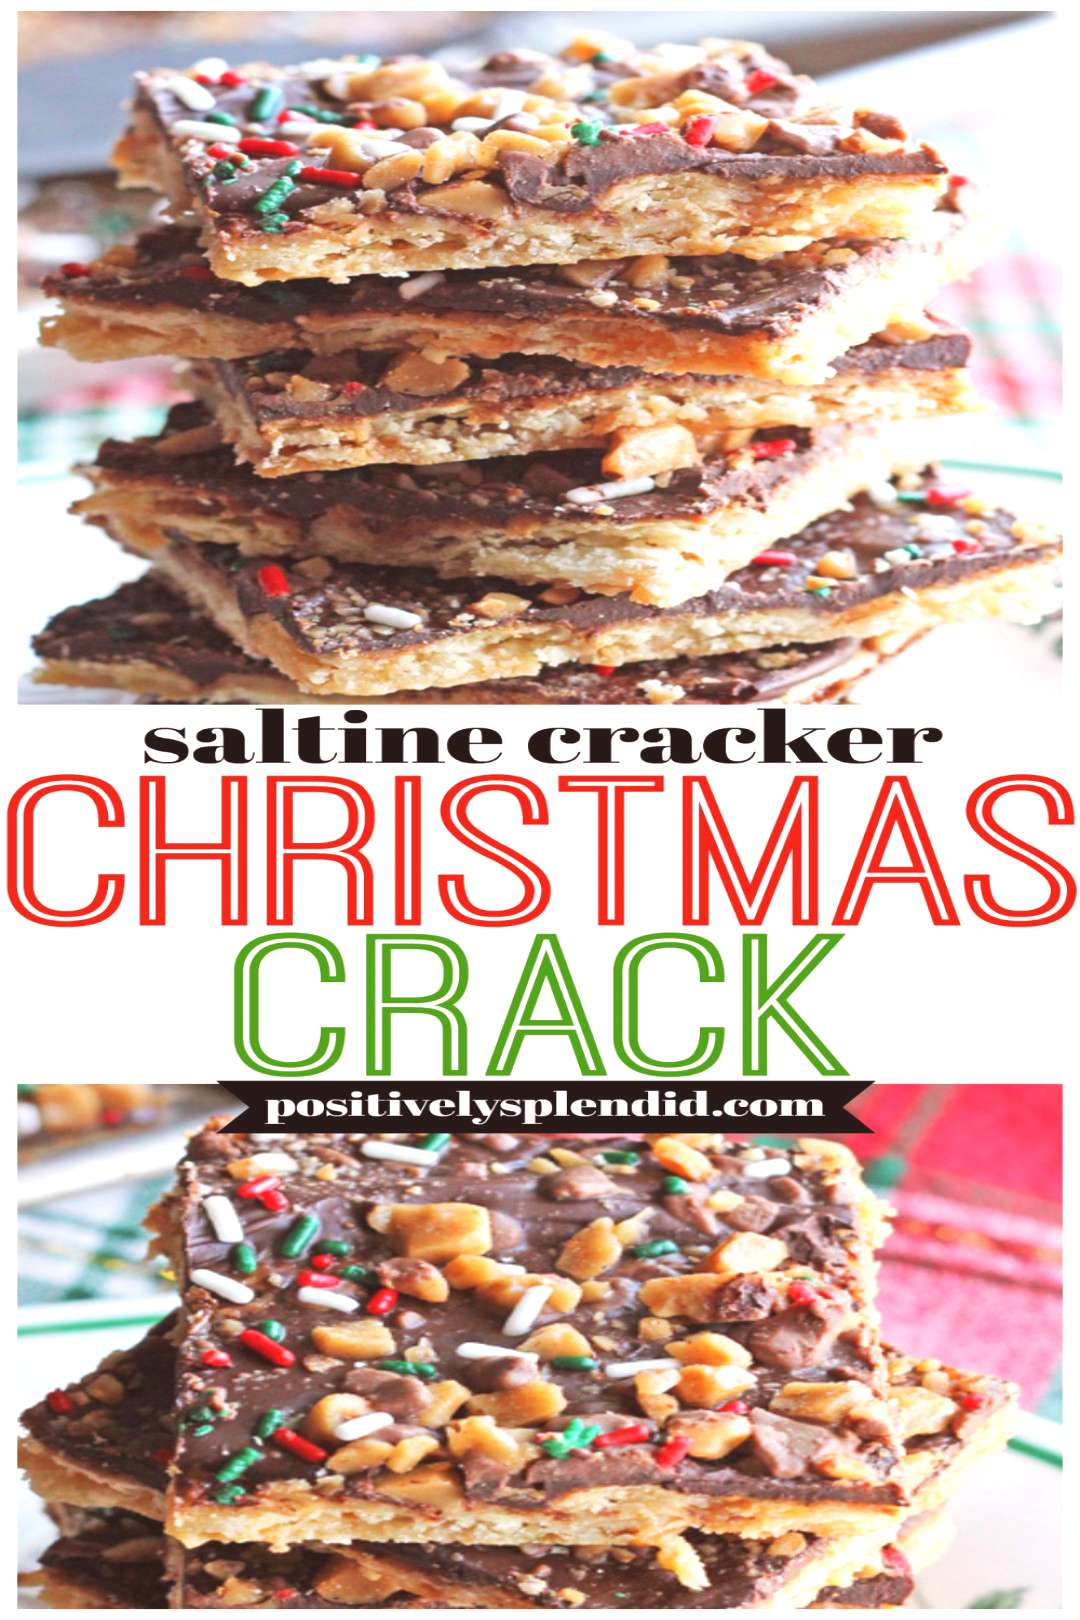 Christmas Crack with Saltine Crackers